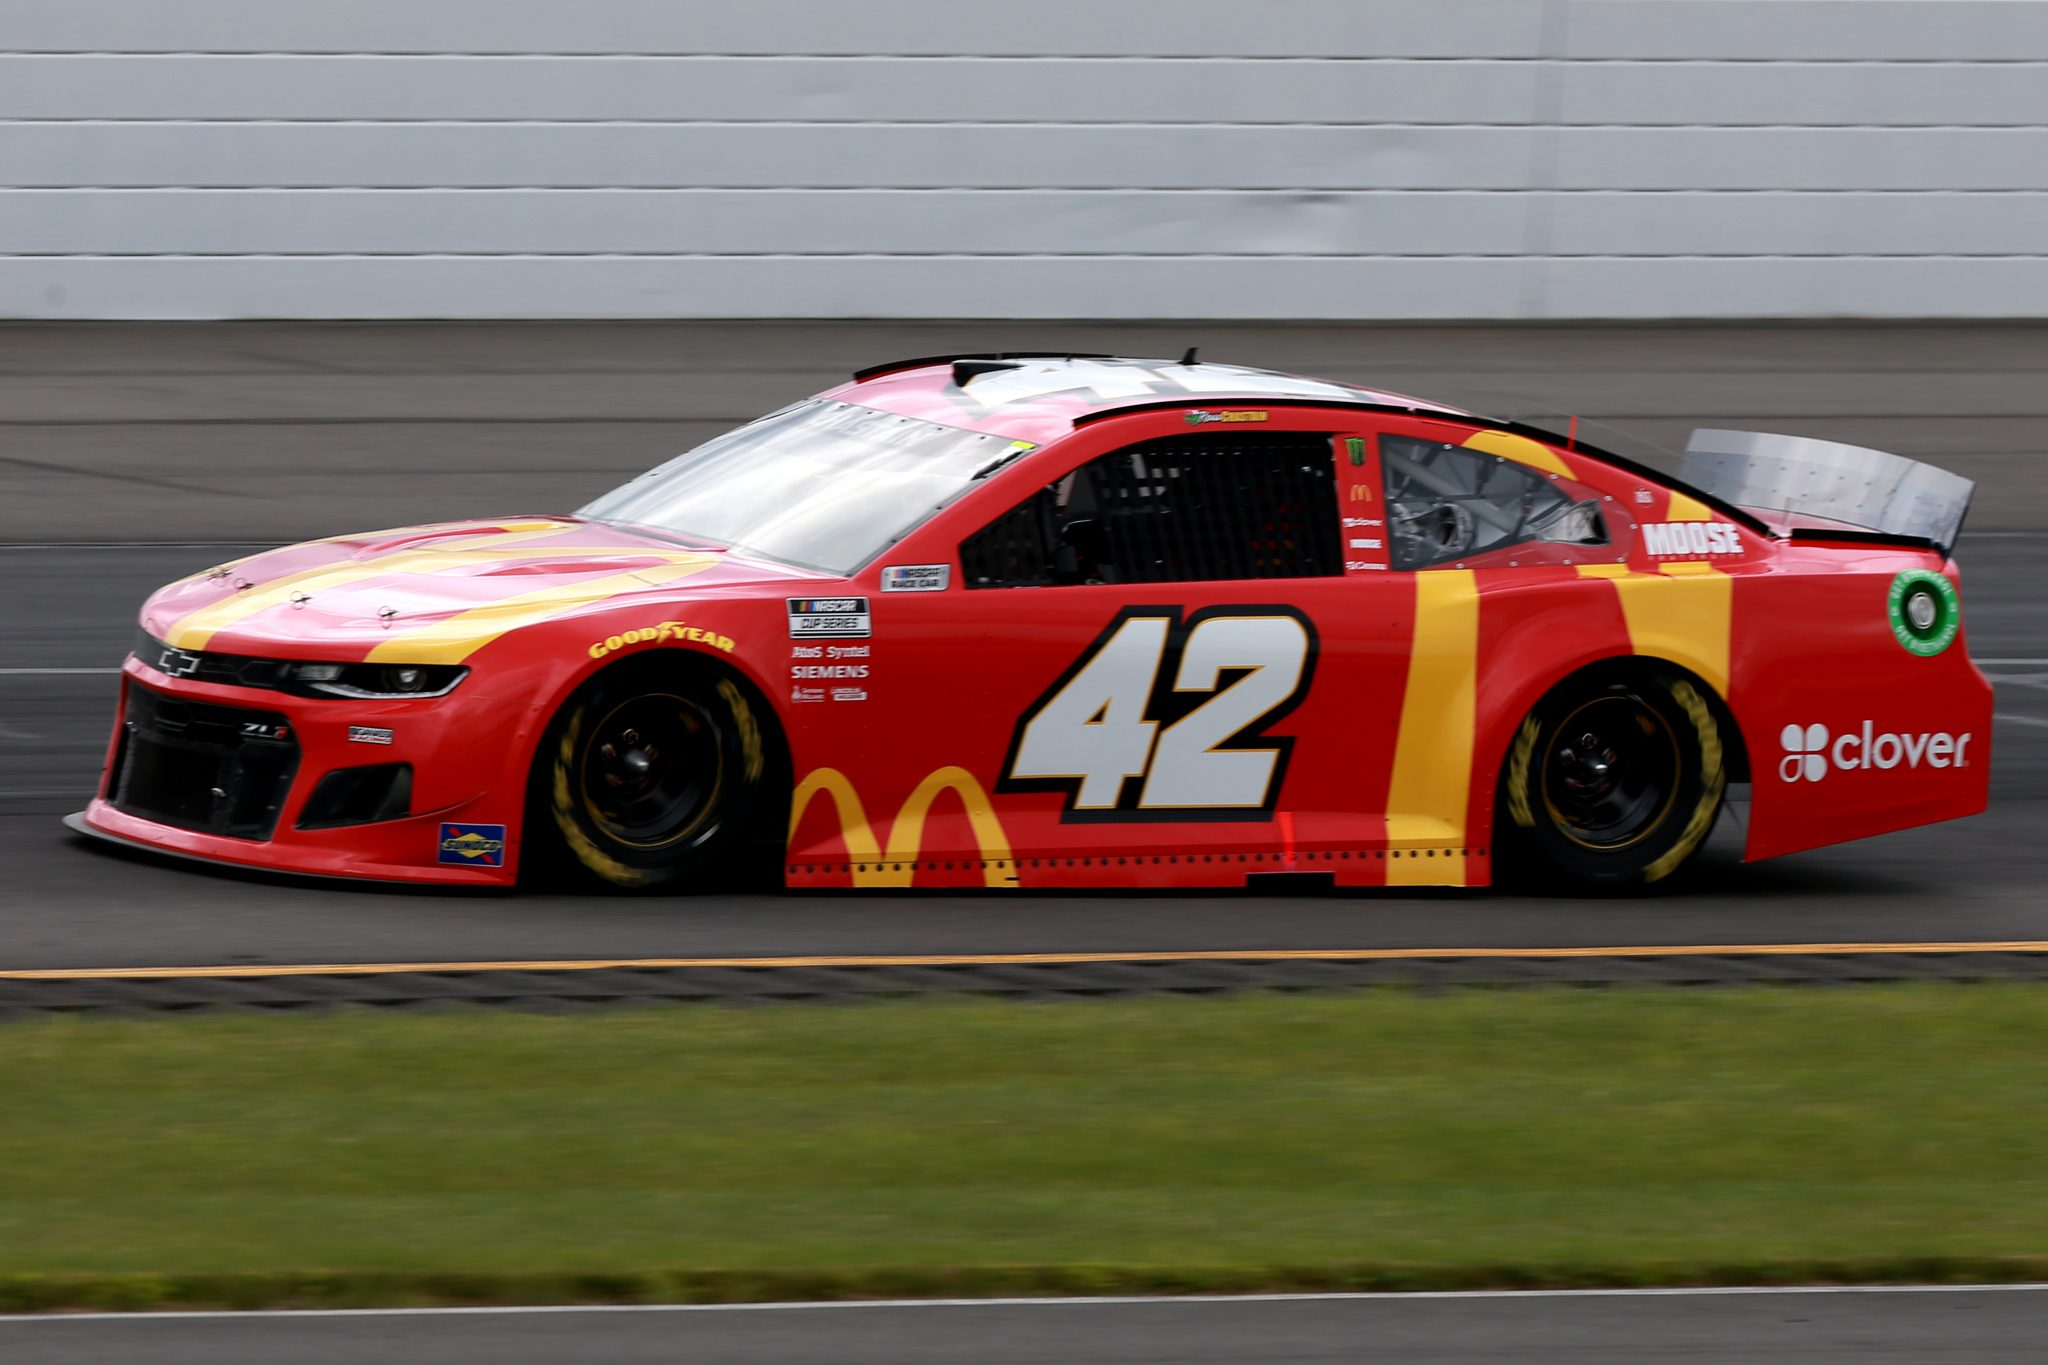 LONG POND, PENNSYLVANIA - JUNE 26: Ross Chastain, driver of the #42 McDonald's Chevrolet, drives during the NASCAR Cup Series Pocono Organics CBD 325 at Pocono Raceway on June 26, 2021 in Long Pond, Pennsylvania. (Photo by Sean Gardner/Getty Images) | Getty Images